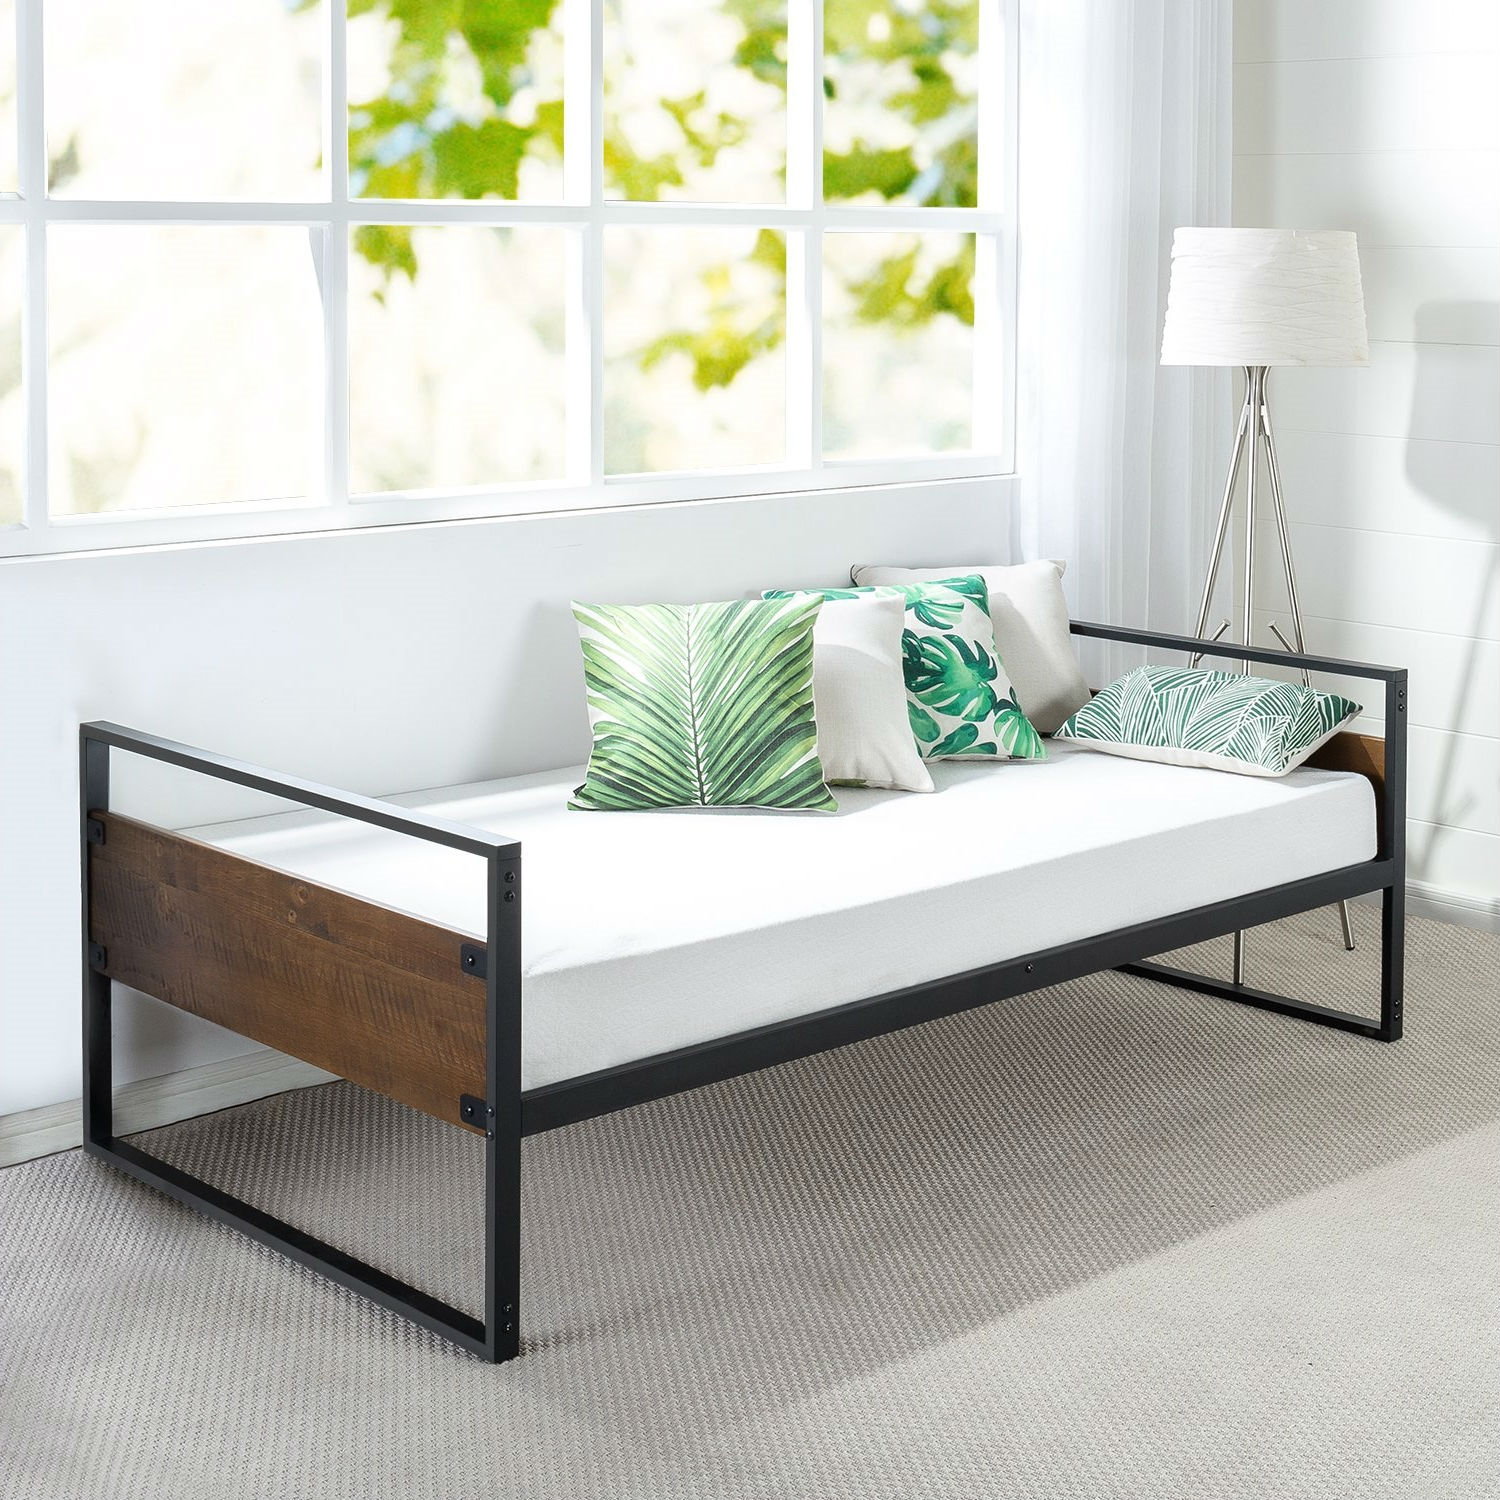 Twin Modern Wood Metal Daybed Frame with Steel Slats ...